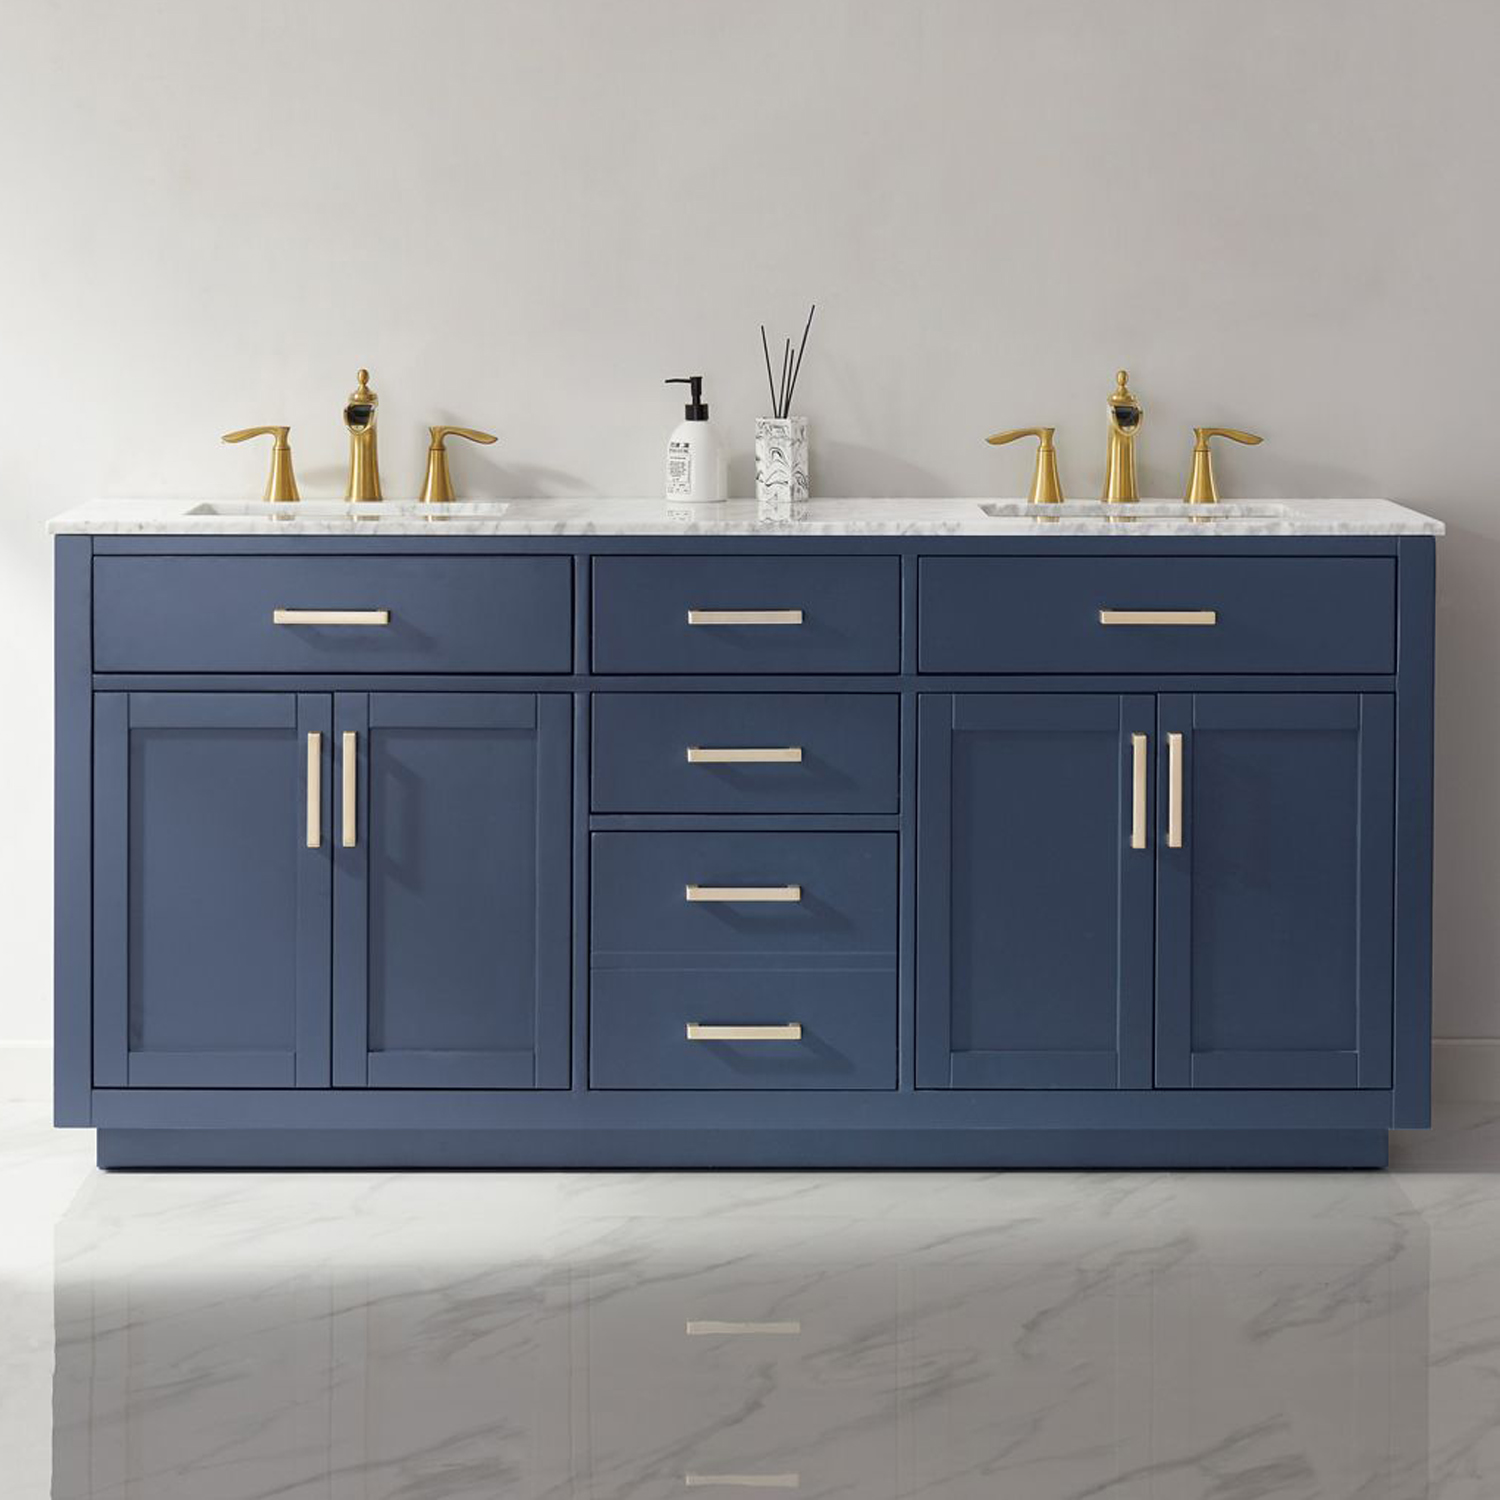 "Issac Edwards Collection 72"" Double Bathroom Vanity Set in Royal Blue and Carrara White Marble Countertop without Mirror"